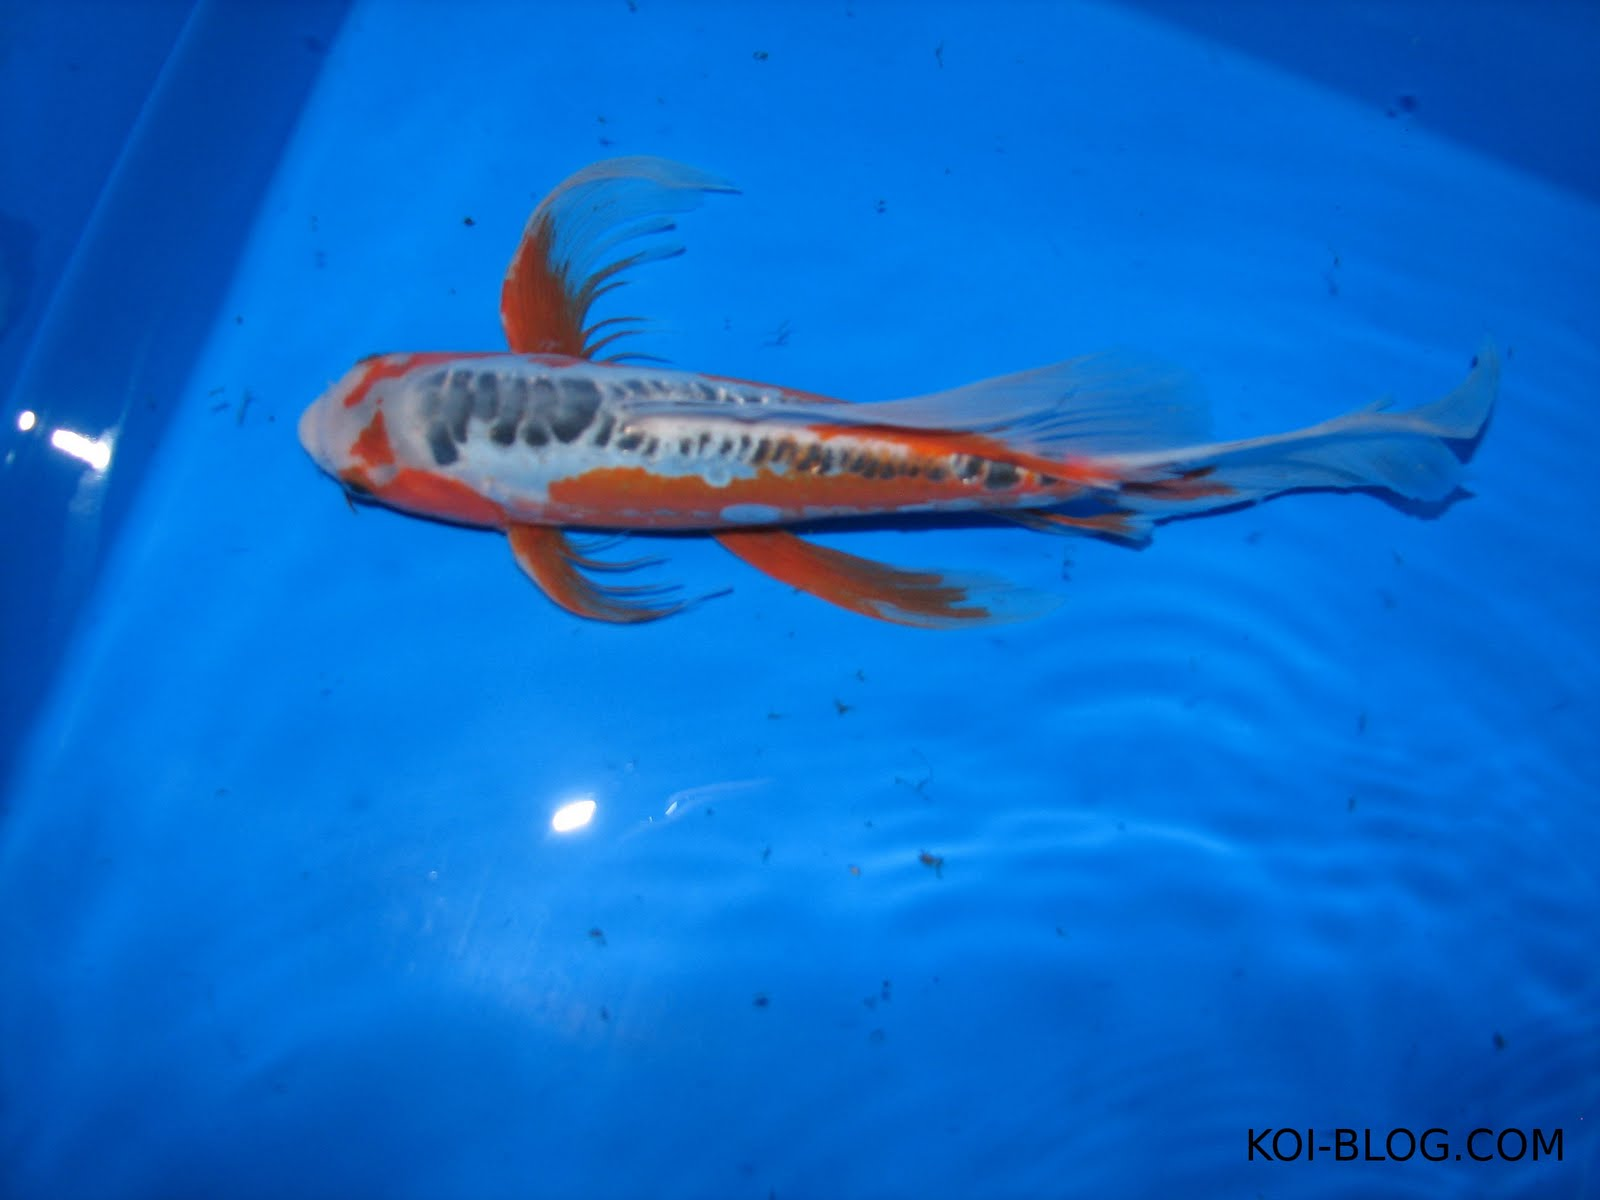 Koi blog the meaning of koi fish for Keeping koi carp